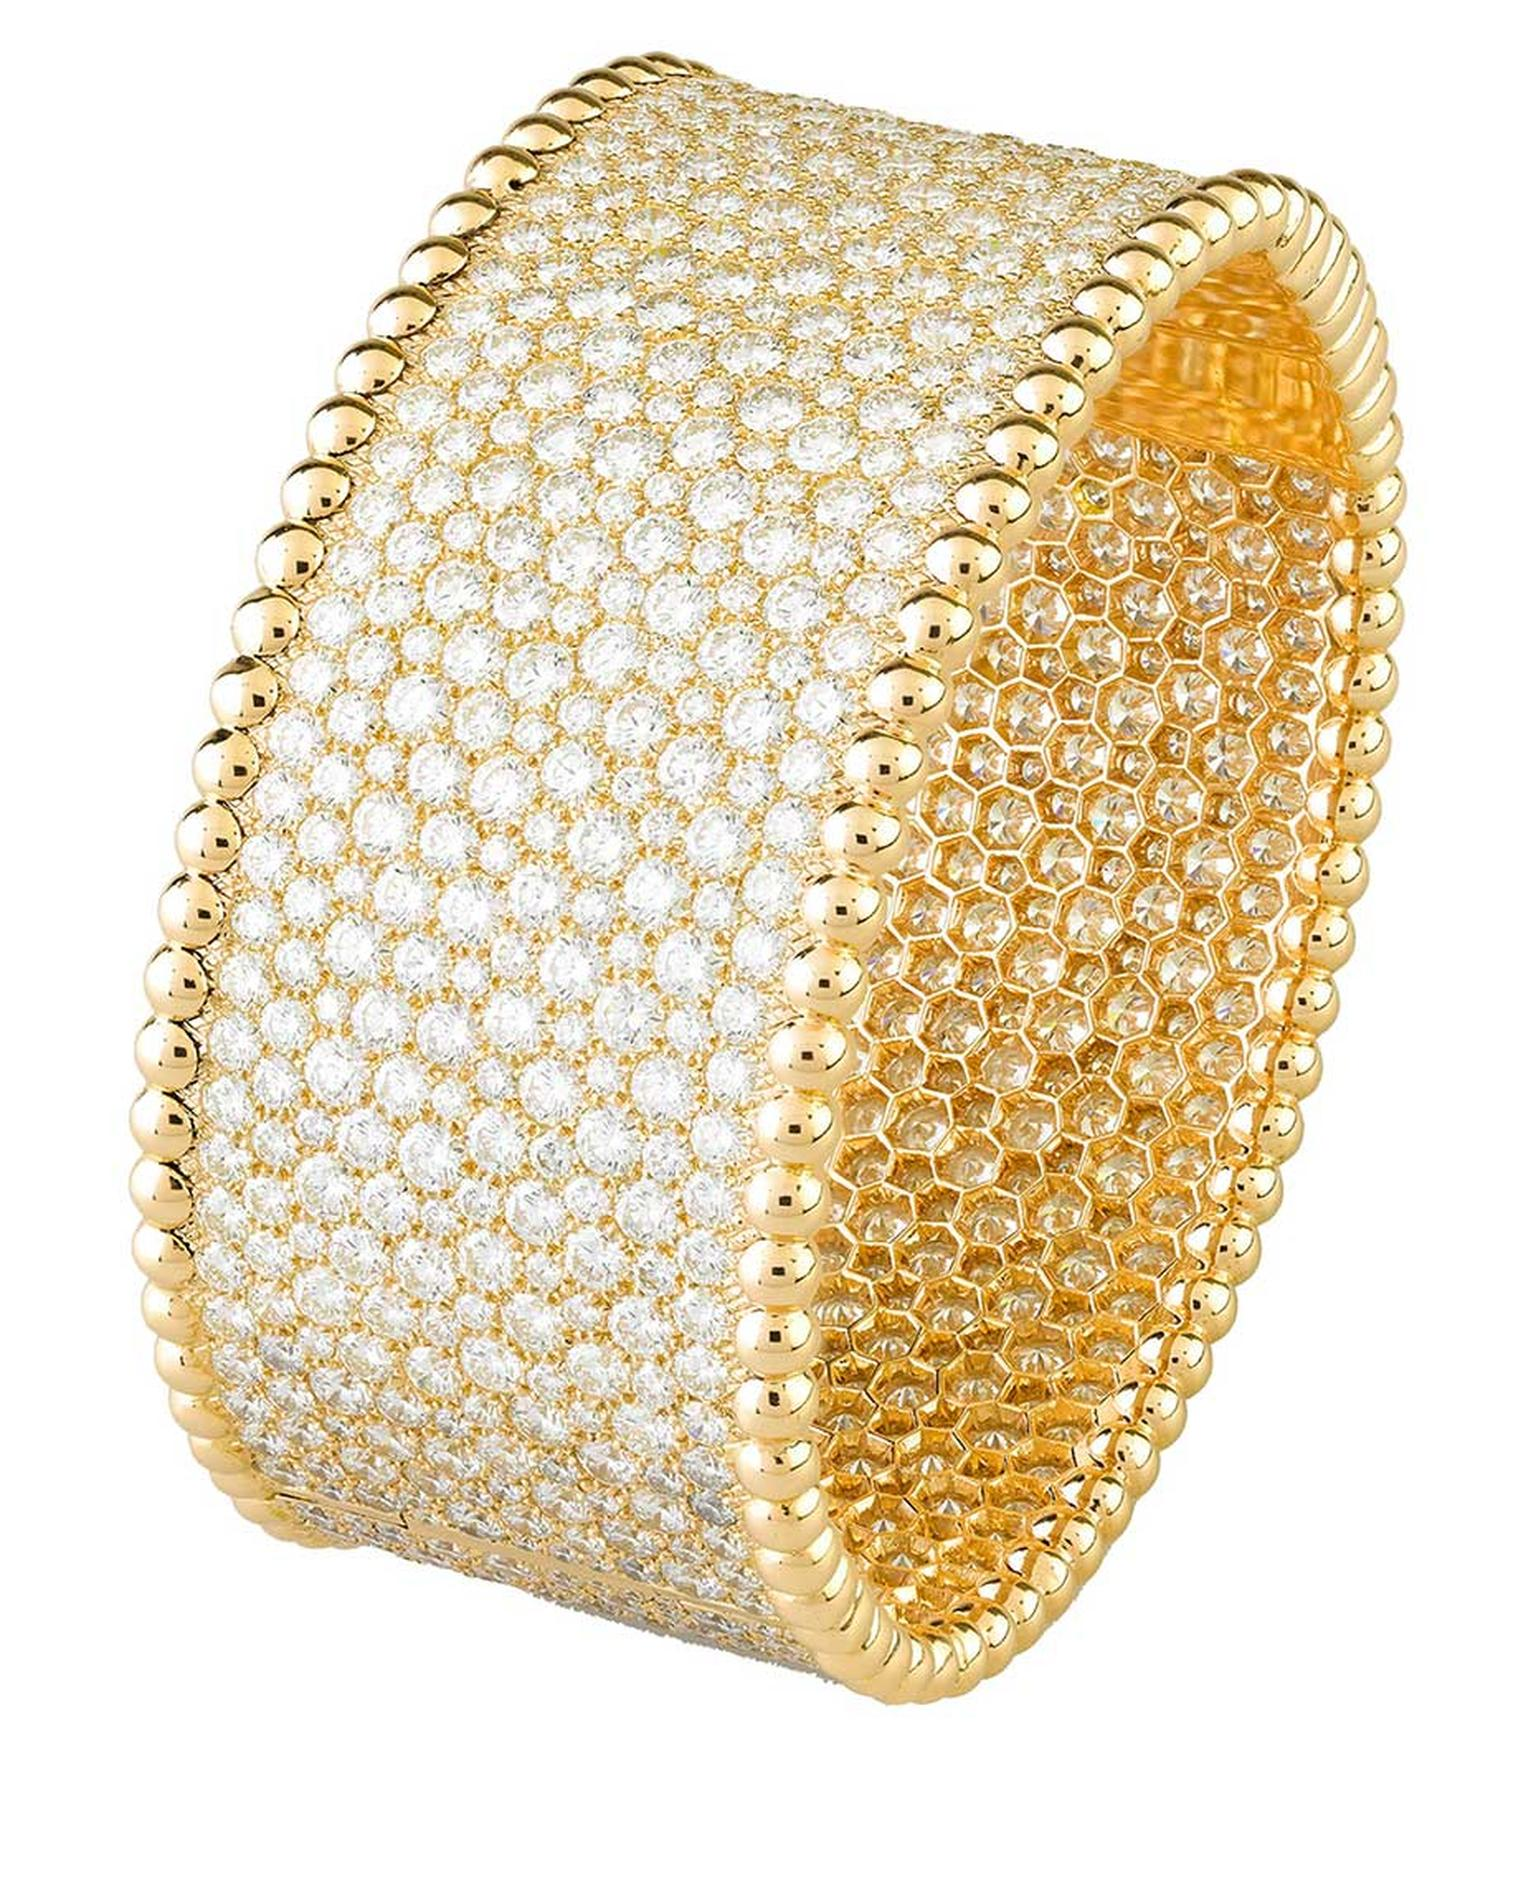 Van Cleef & Arpels Perlée snow-set diamond cuff bracelet showcases the maison's extraordinary craftsmanship by using a technique that makes the jewel appear to have literally been dusted in diamond snowflakes.